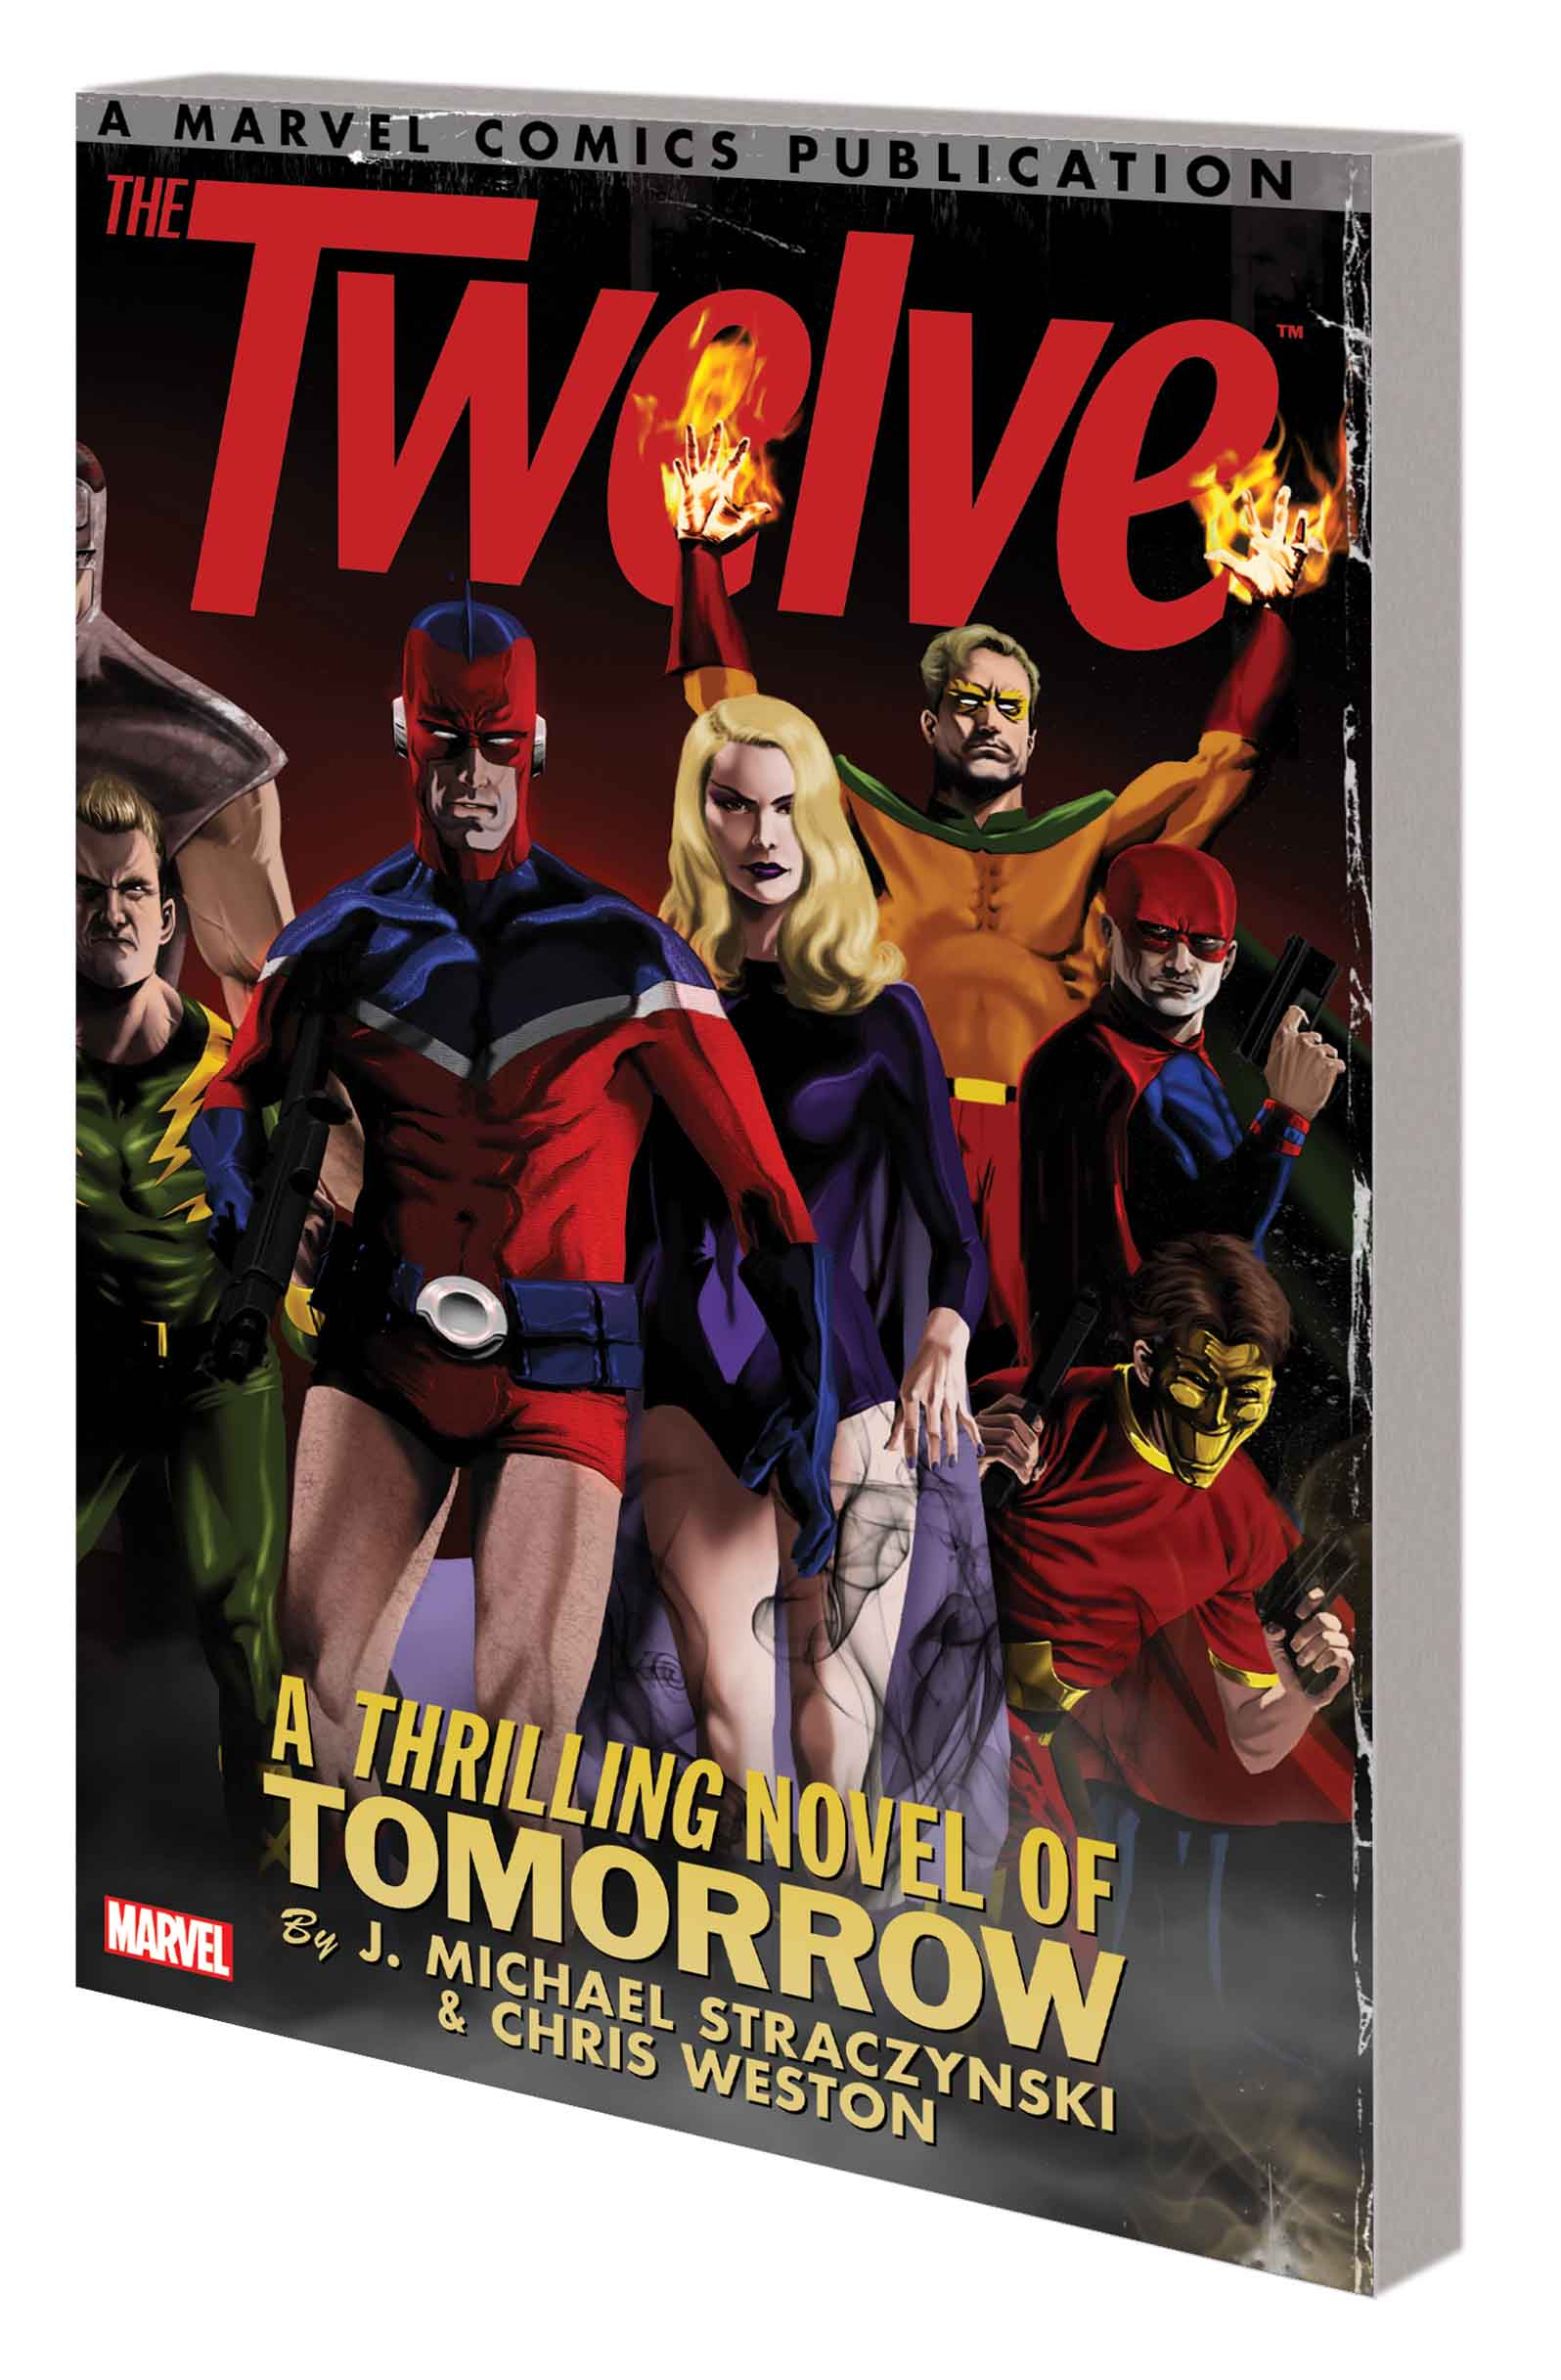 The Twelve: The Complete Series (Trade Paperback)